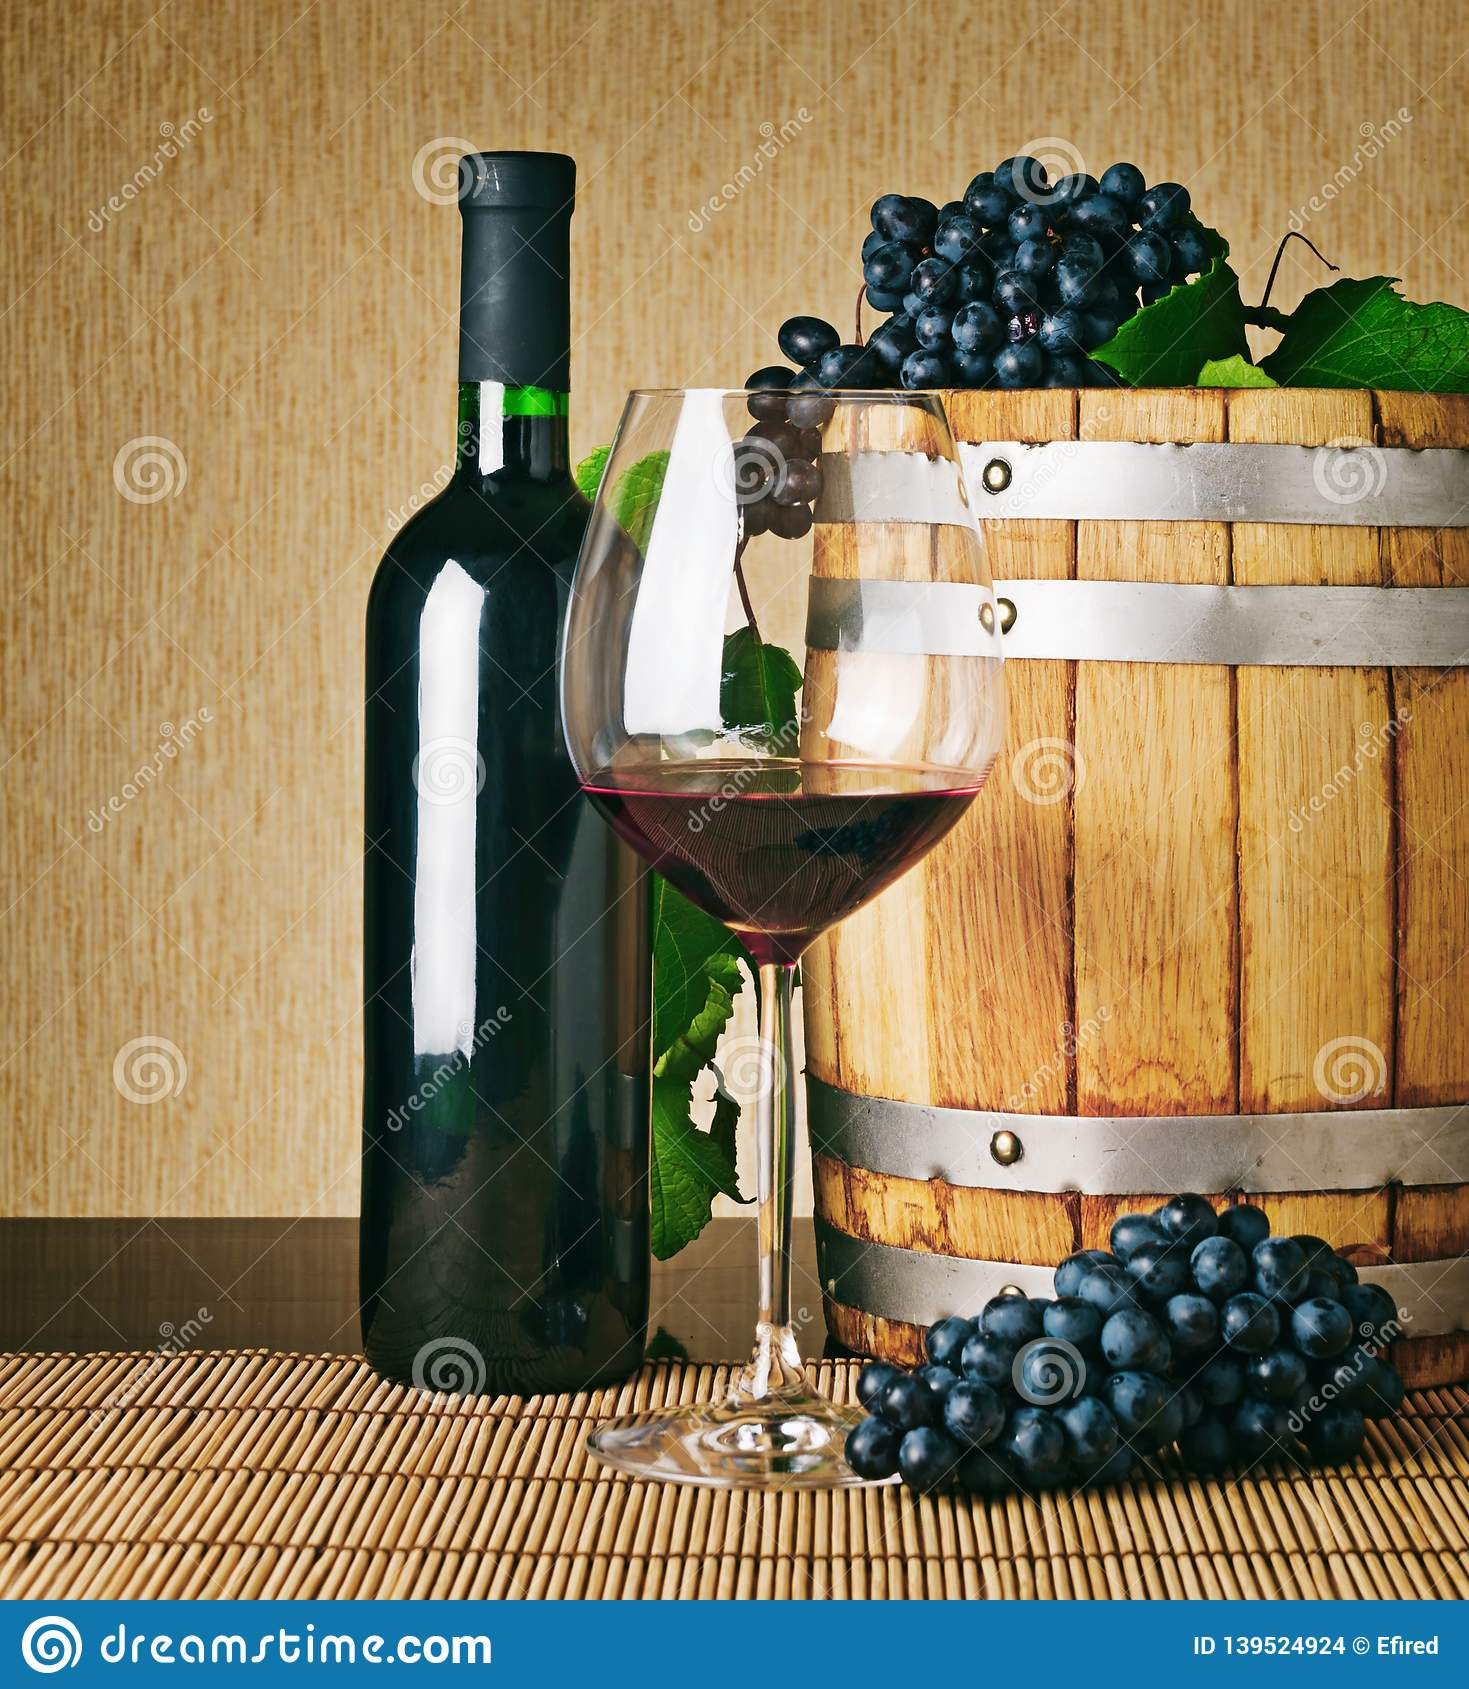 Glass of red wine, wine bottle and wooden barrel